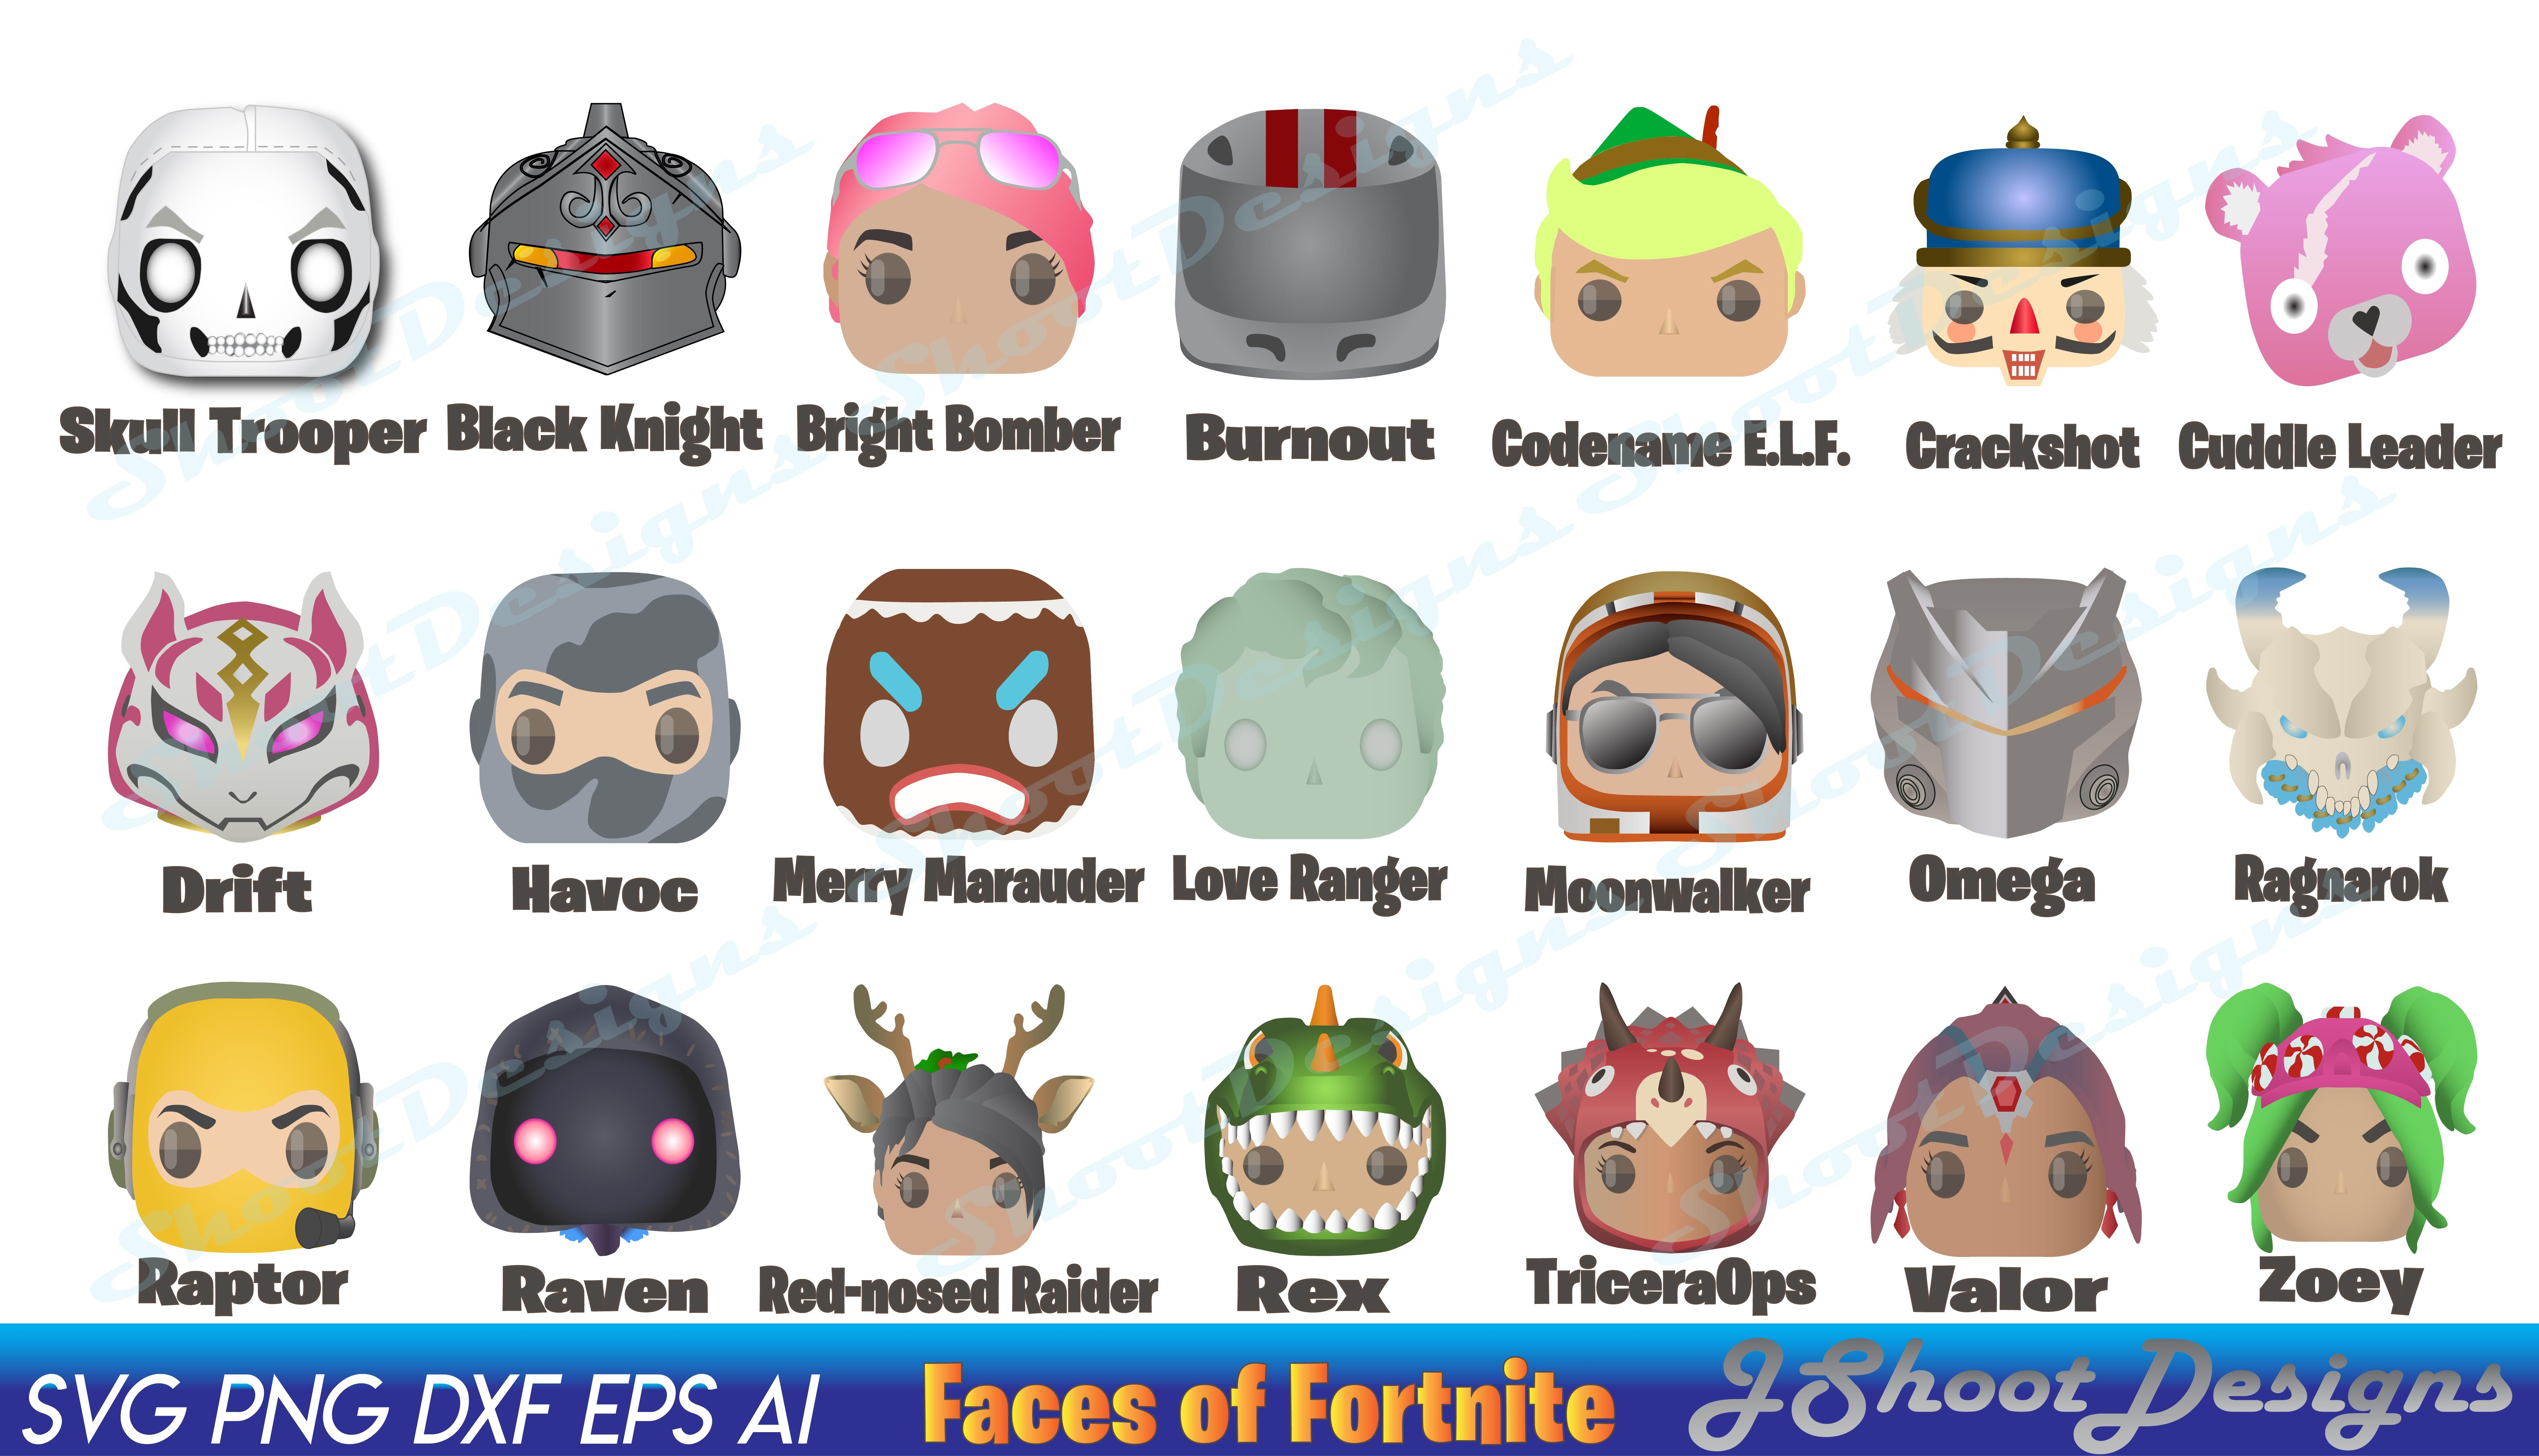 Faces of Fortnite 21 characters from Fortnite on